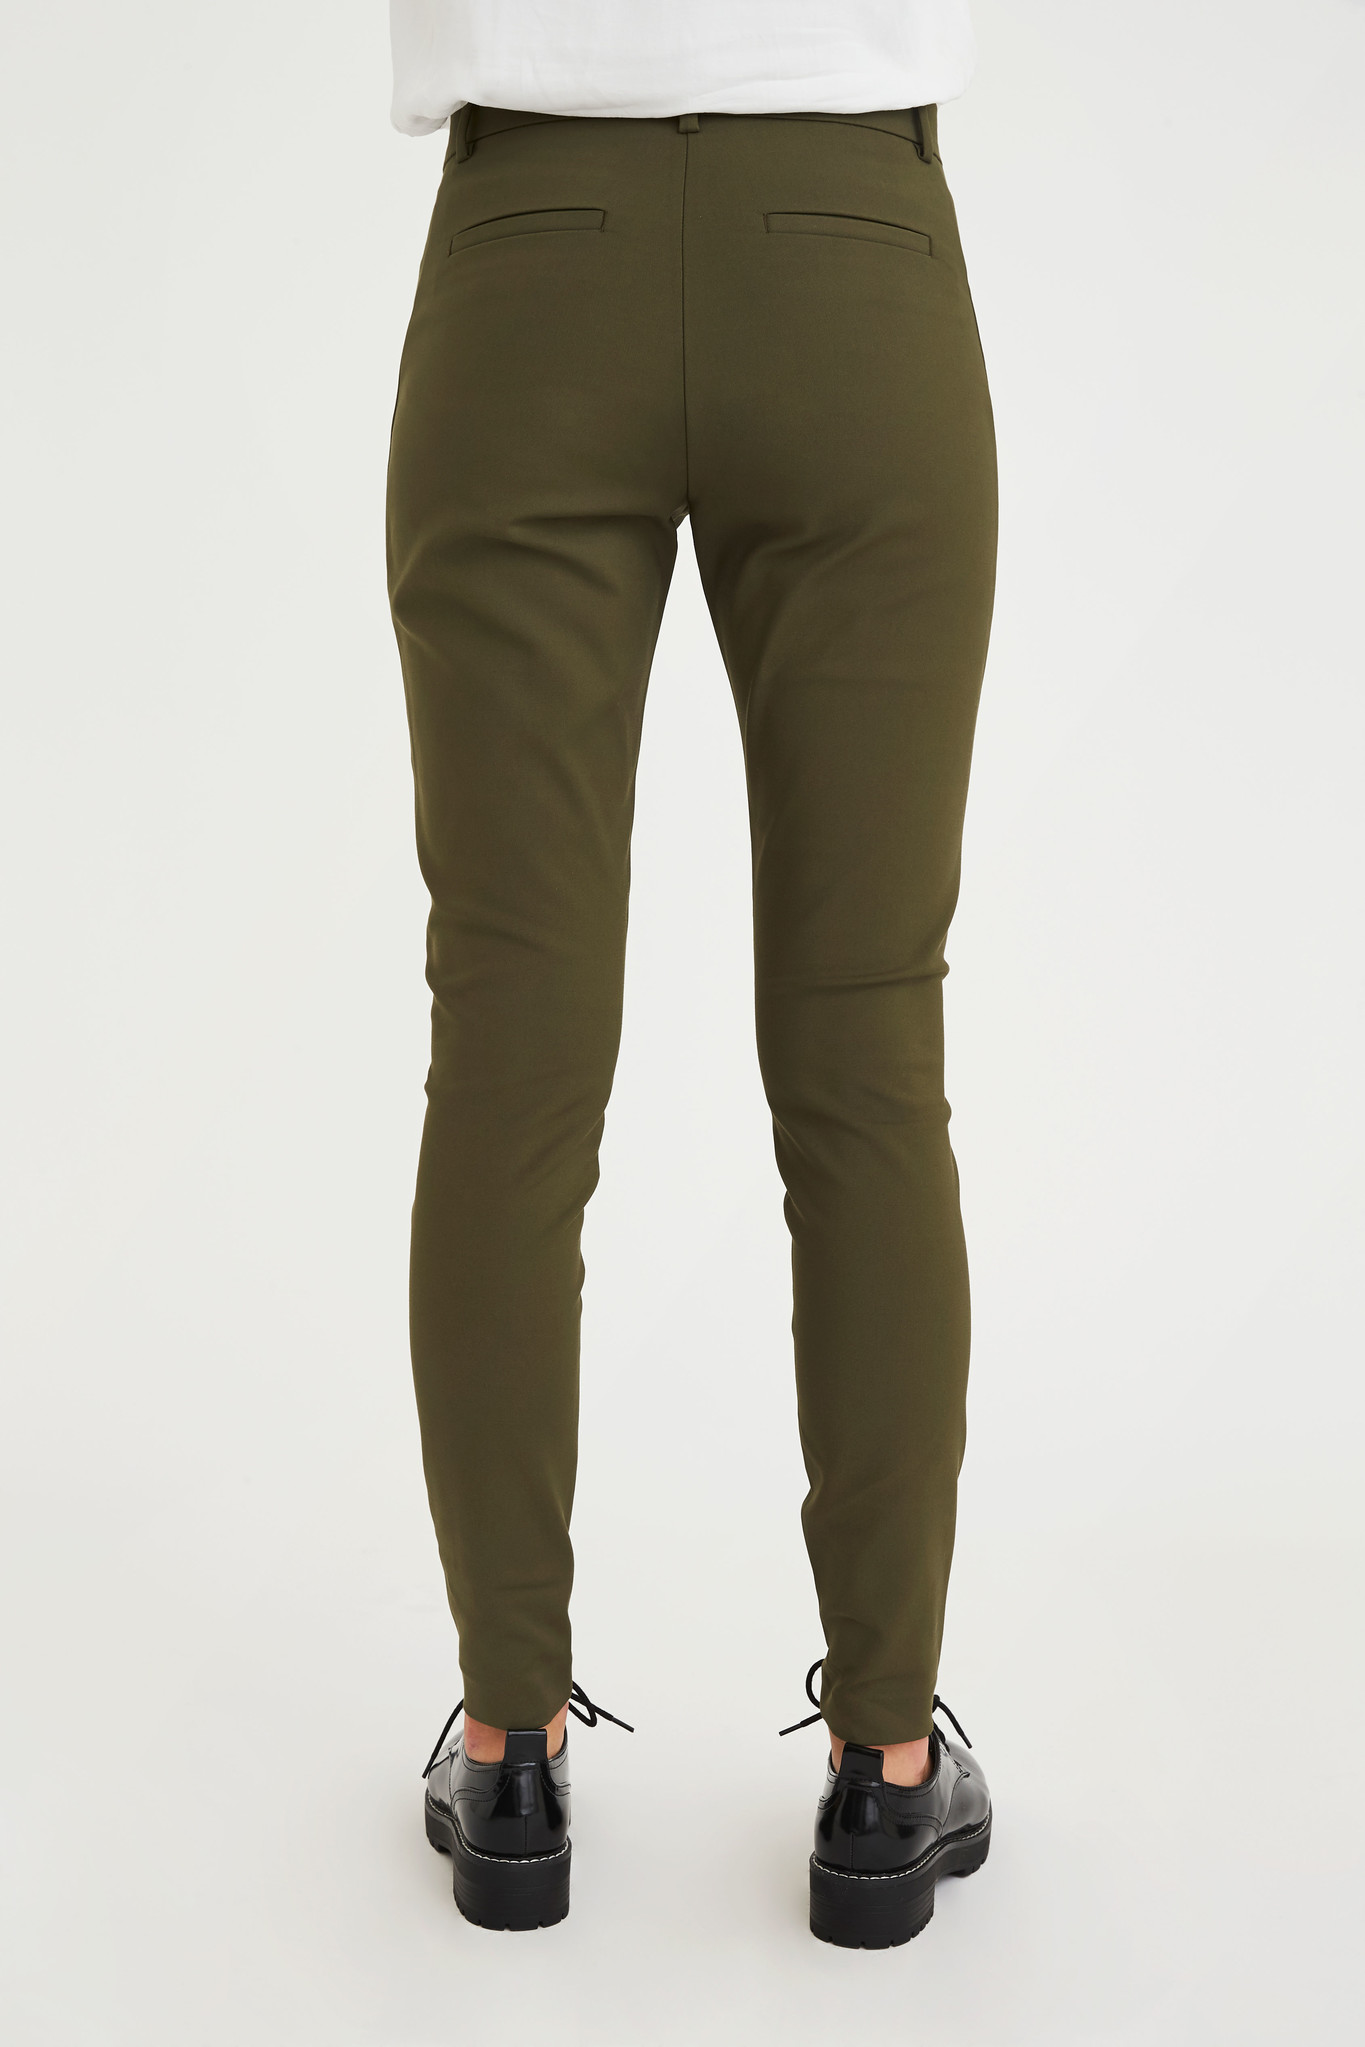 Angelie Pants - Army Jeggin-3